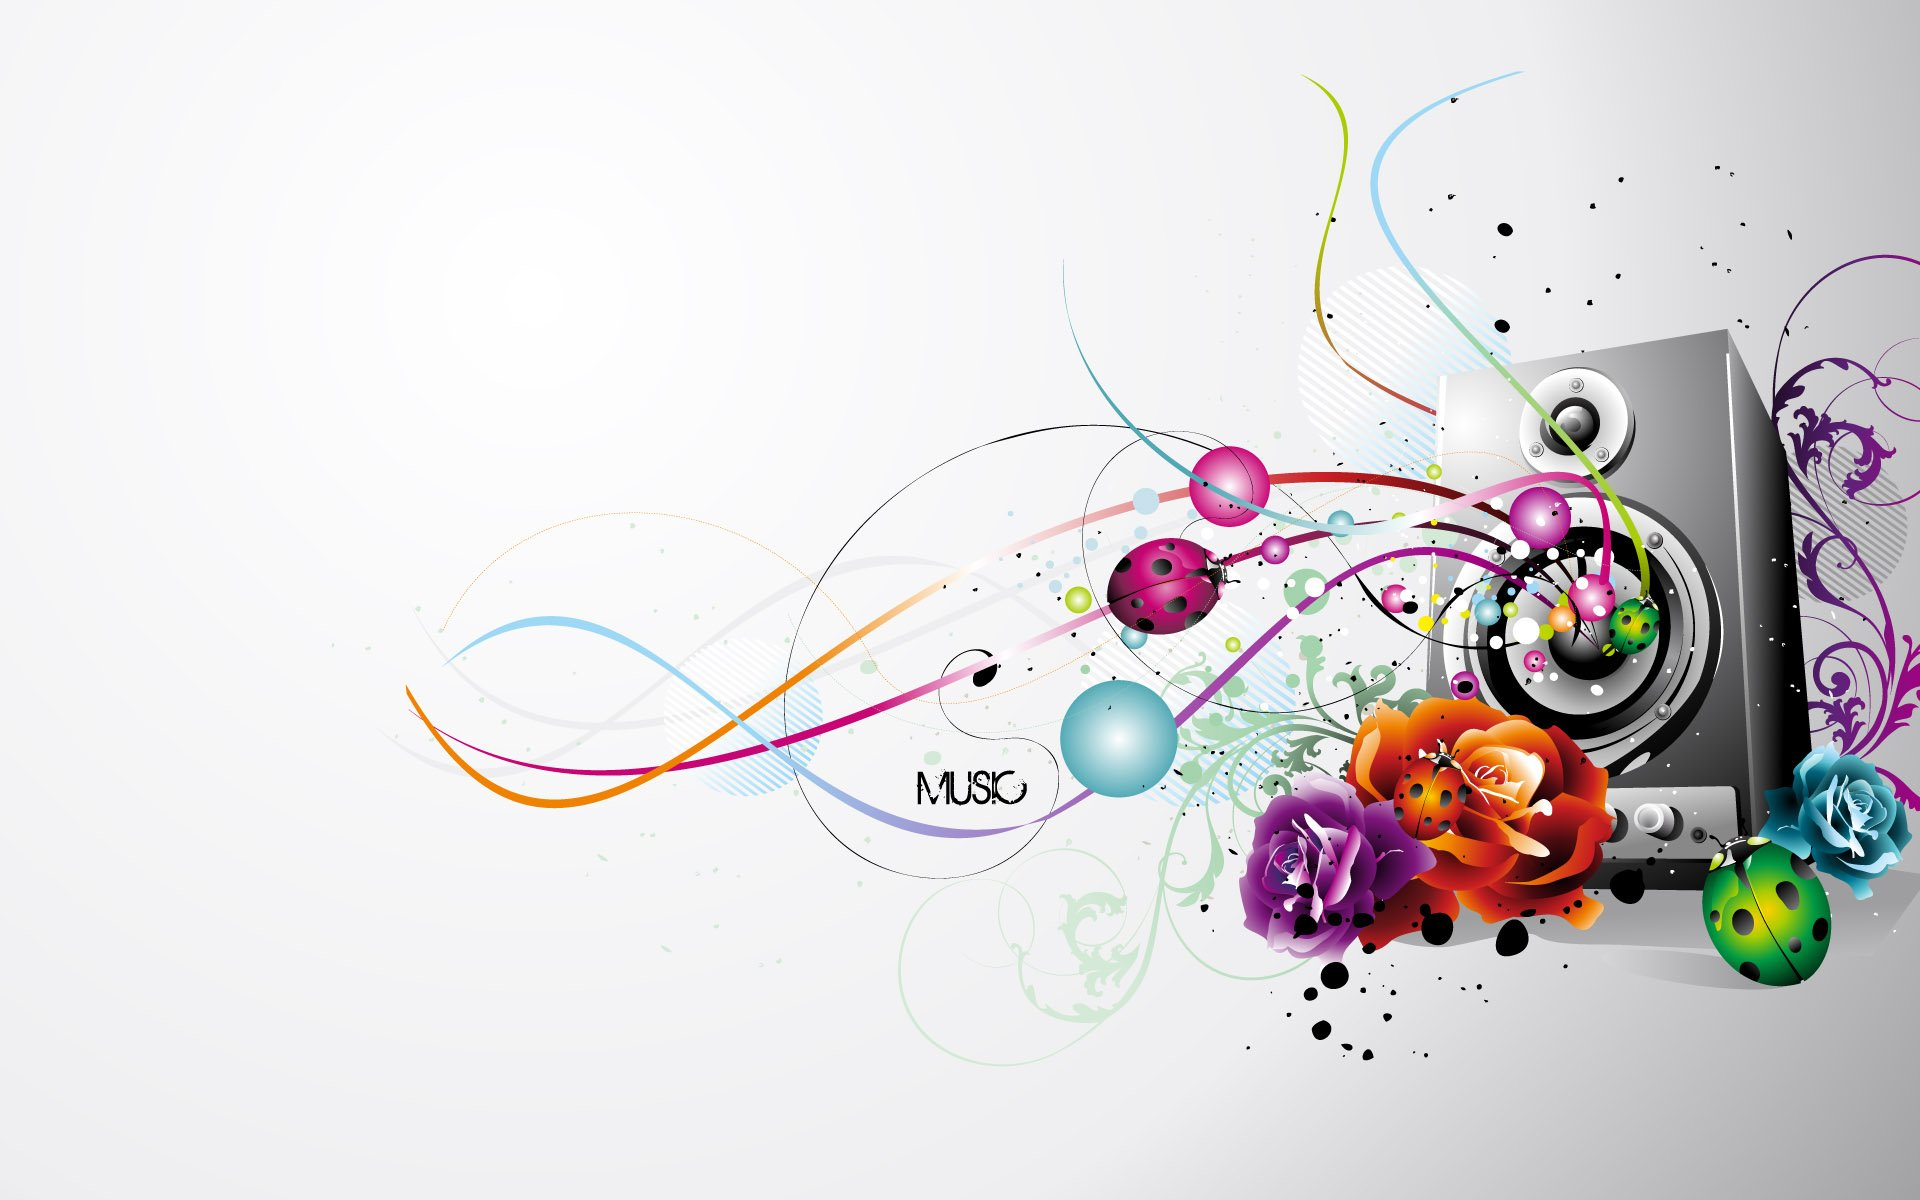 Abstract Art Music Notes Background 1 Hd Wallpapers: Wallpaper Music Artist